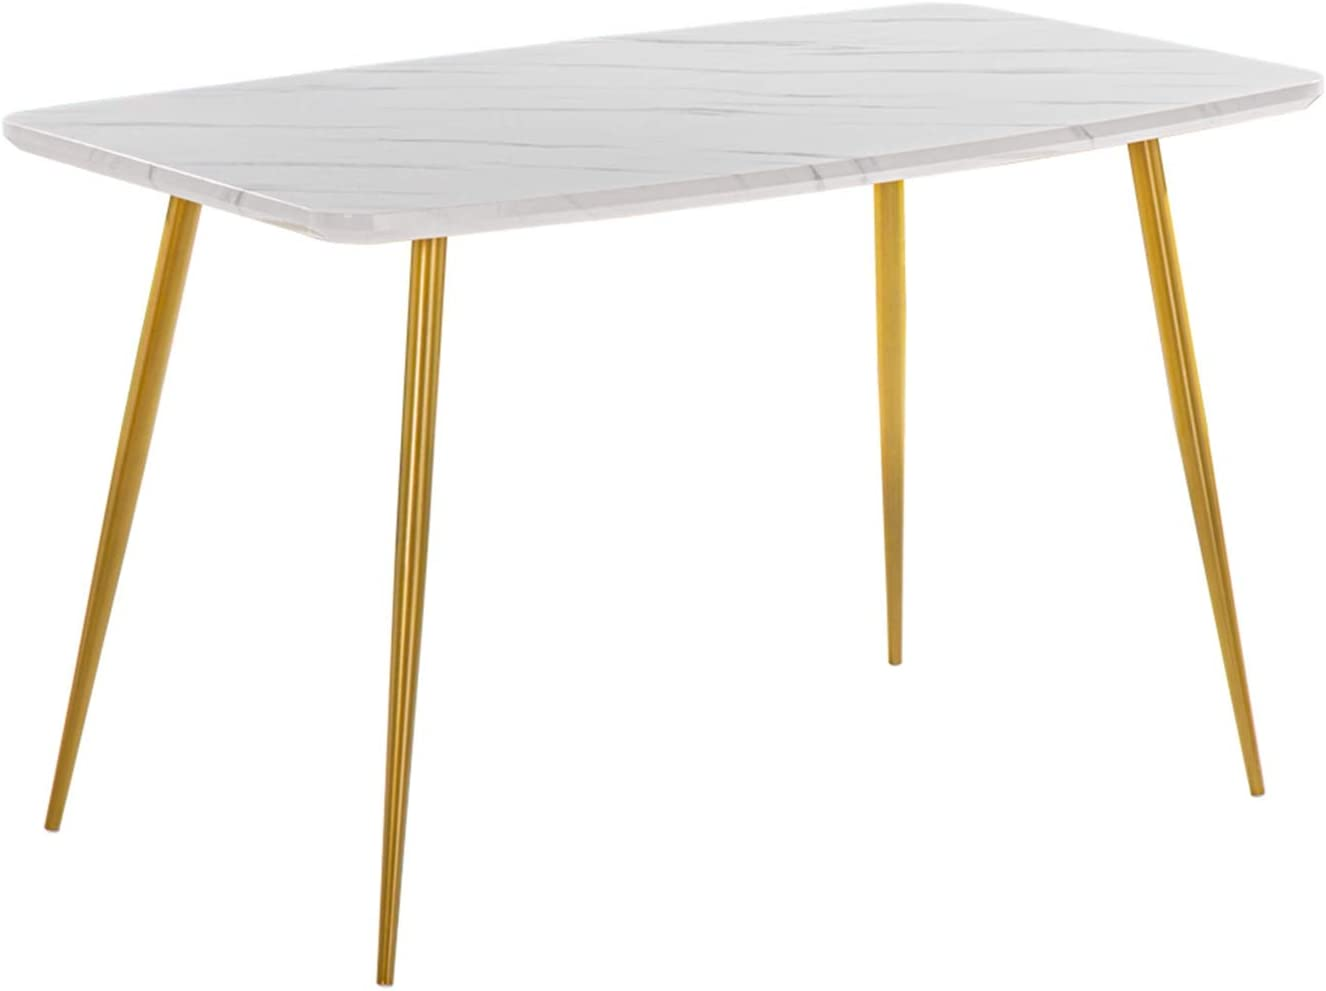 Marble Dining Table 120x74x76cm White Dining Table Coffee Table Modern Tea Kitchen Table Bar Table